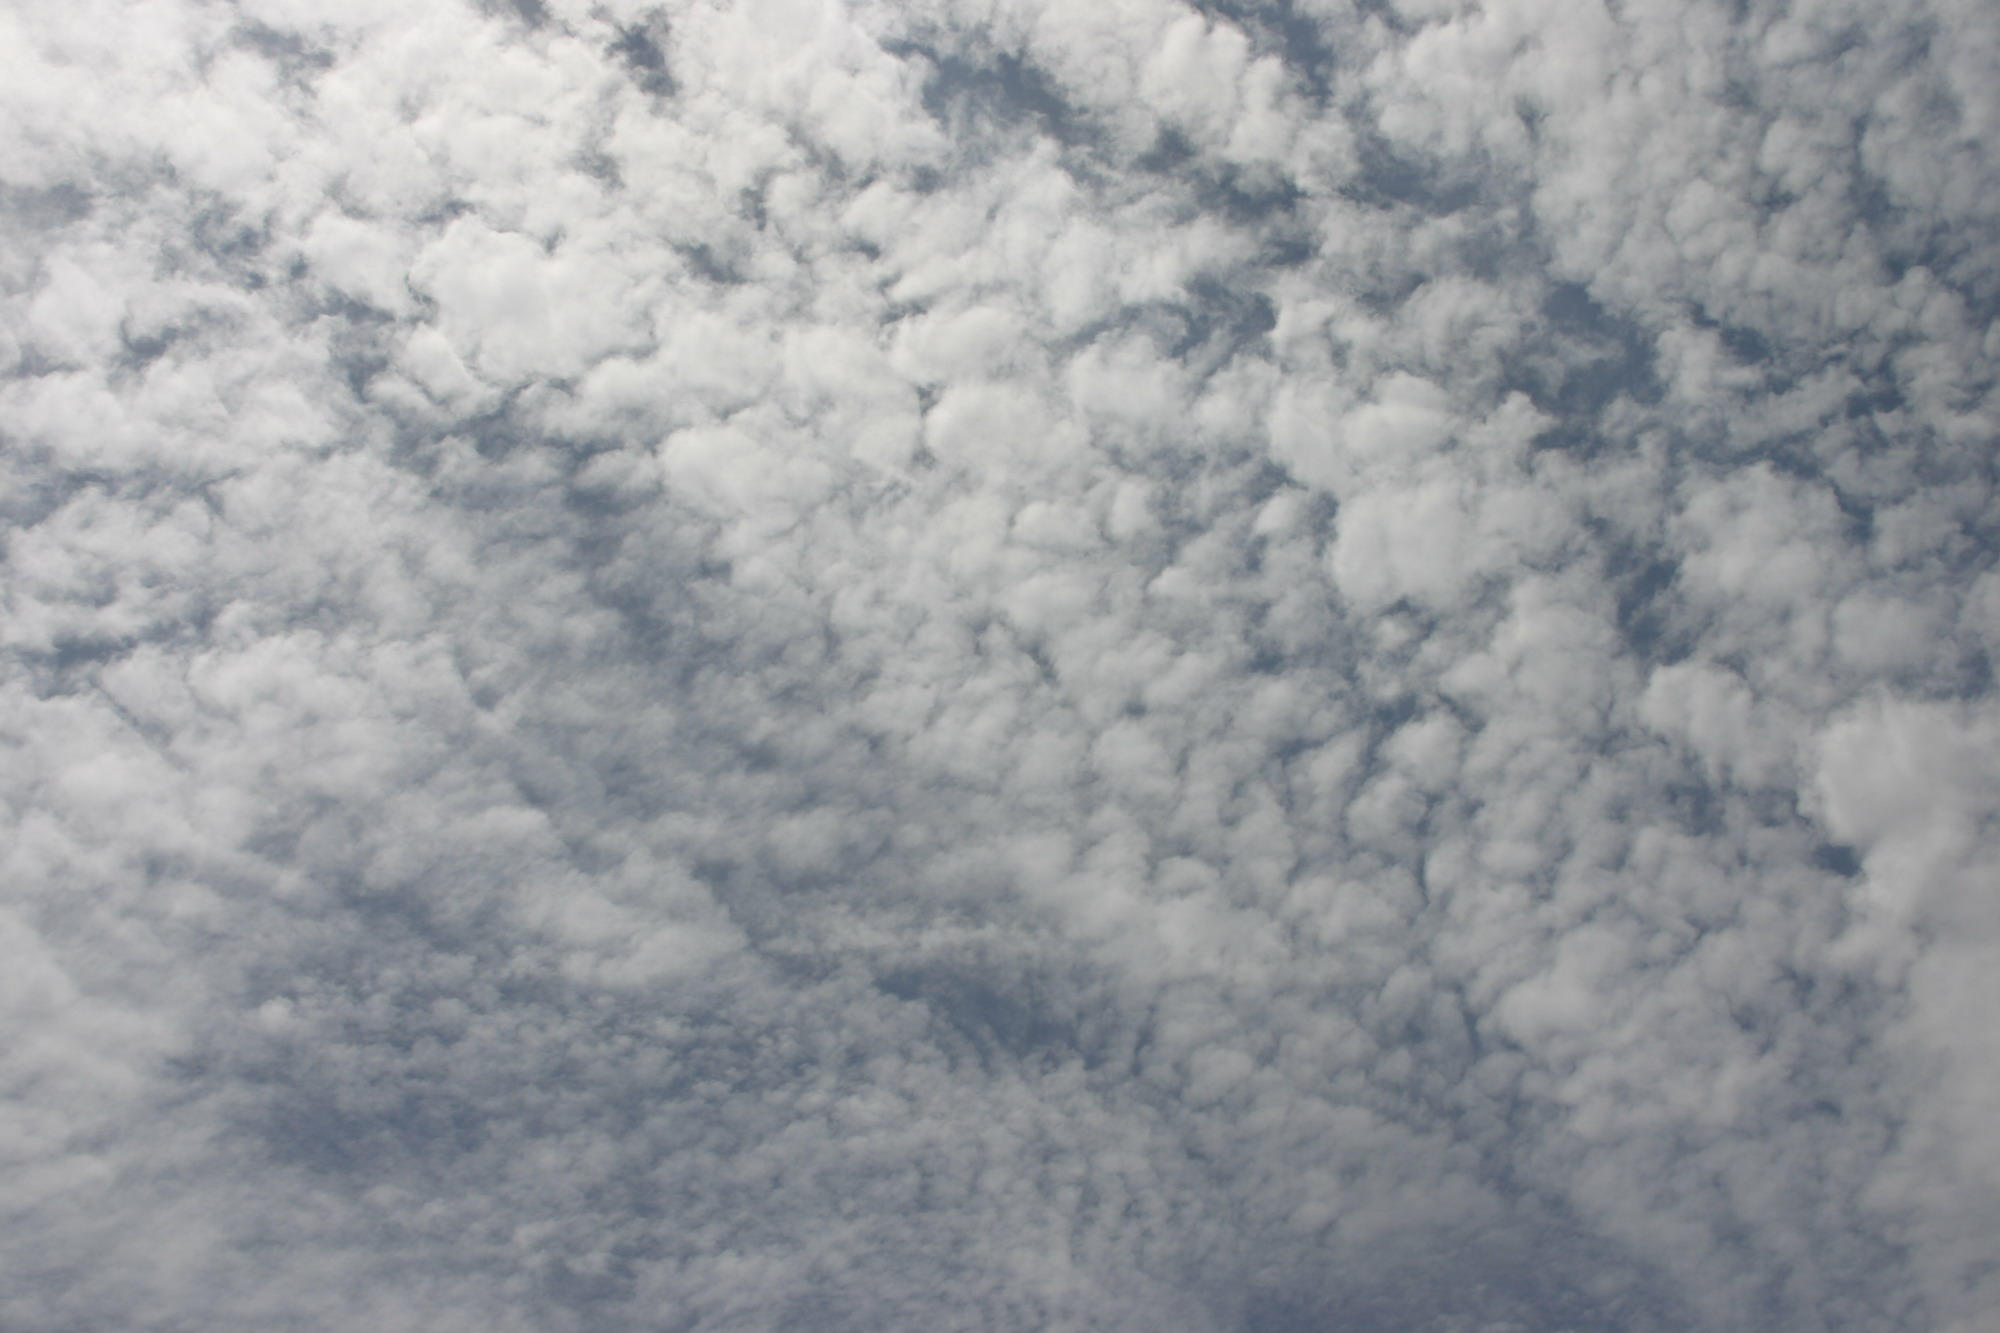 clouds 1 by eikonstock